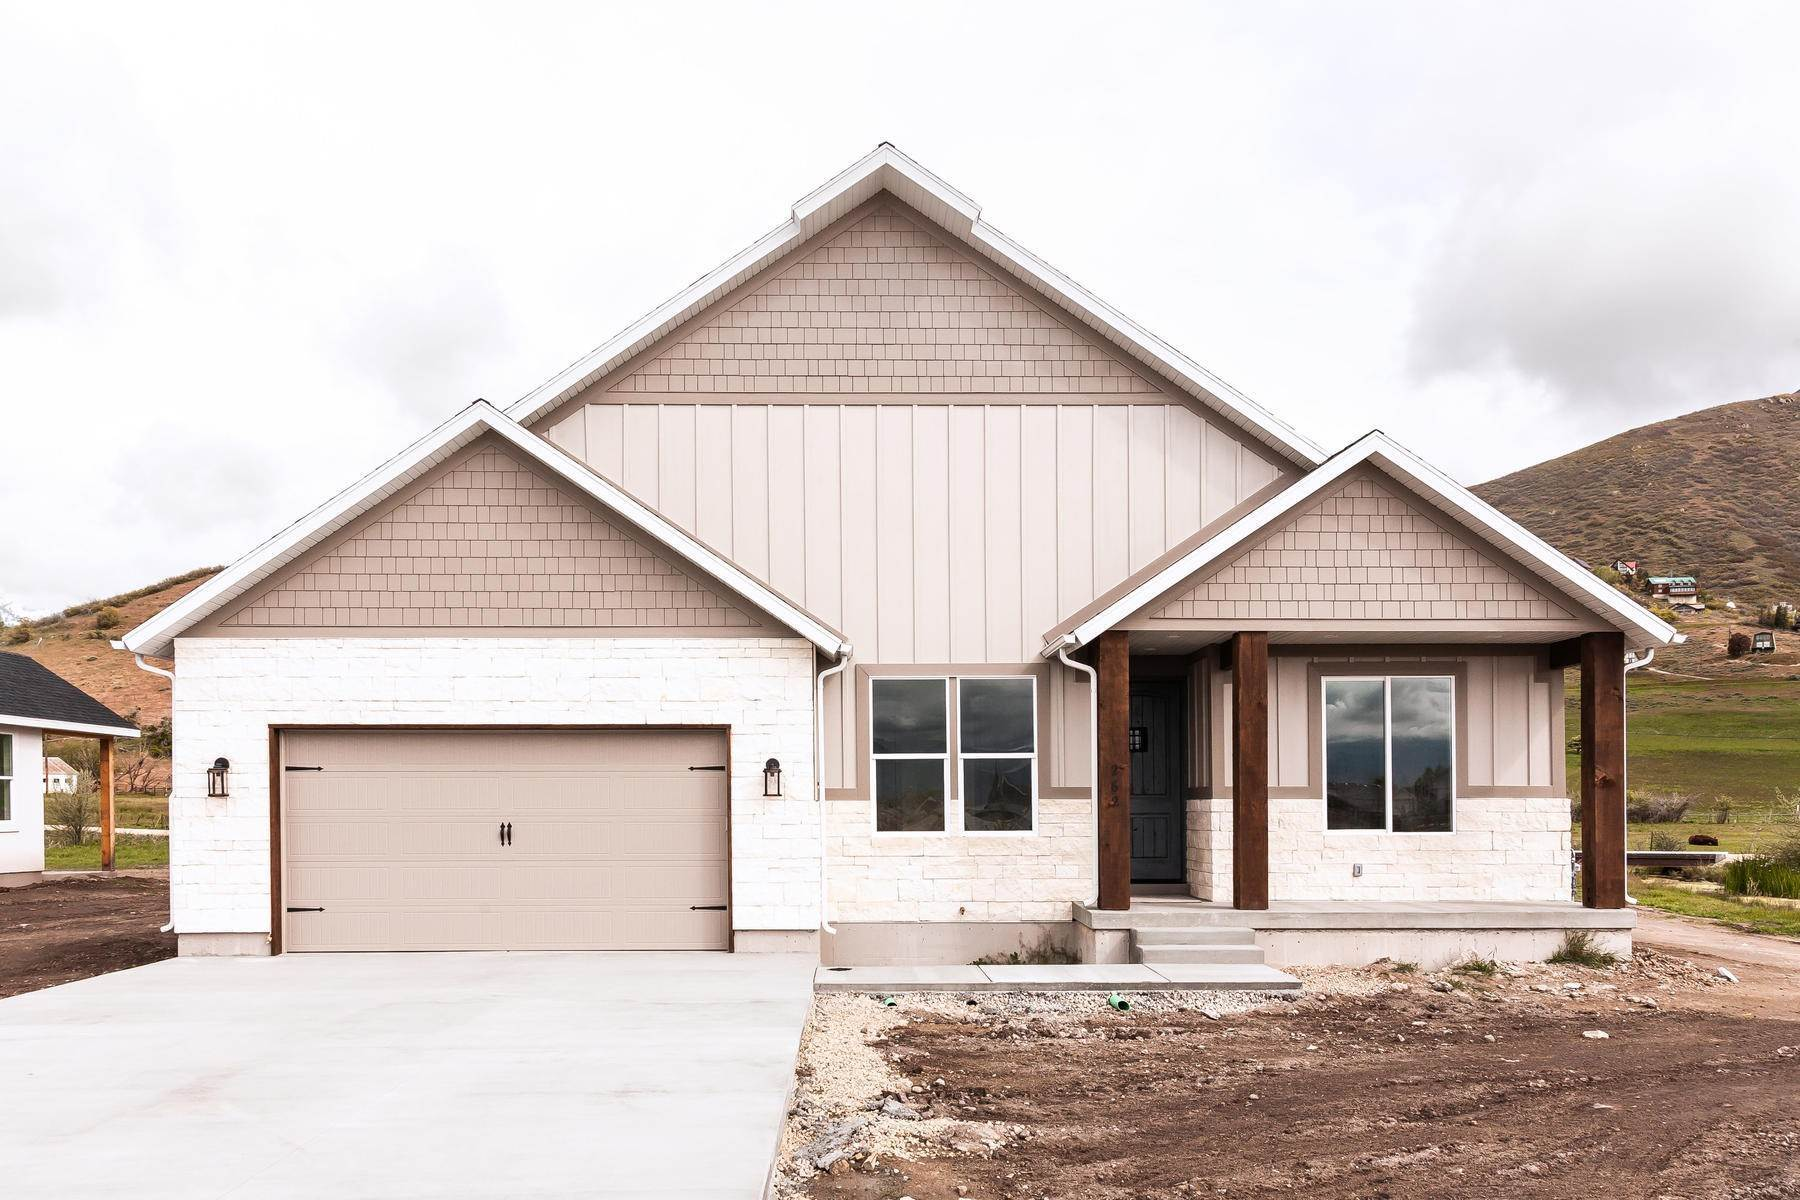 Single Family Homes for Sale at New Construction in Beautiful Midway 1368 N Jerry Gertsch Lane Midway, Utah 84049 United States